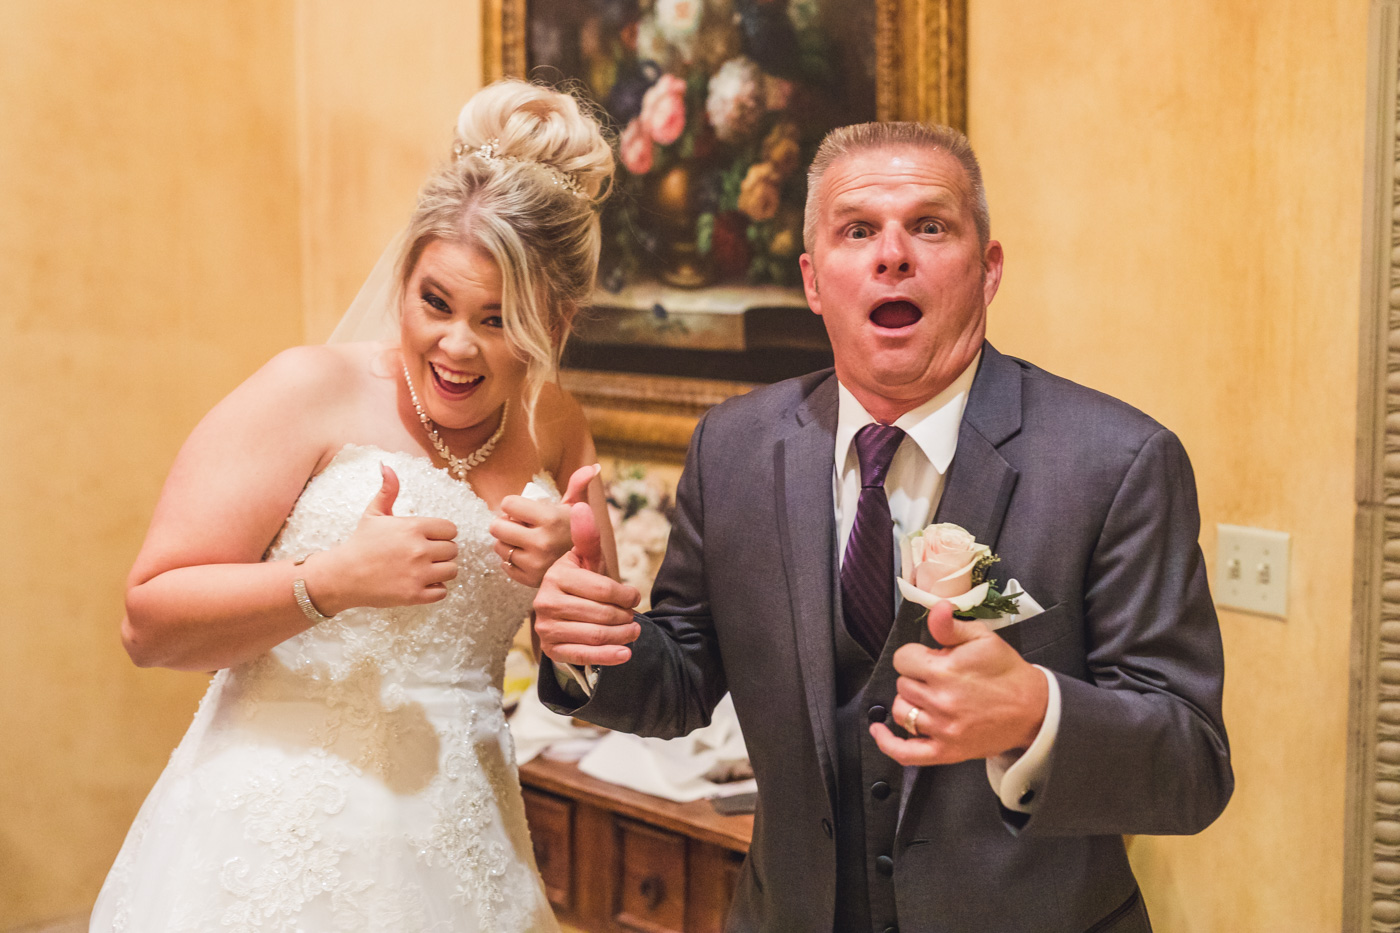 thumbs-up-from-bride-and-dad